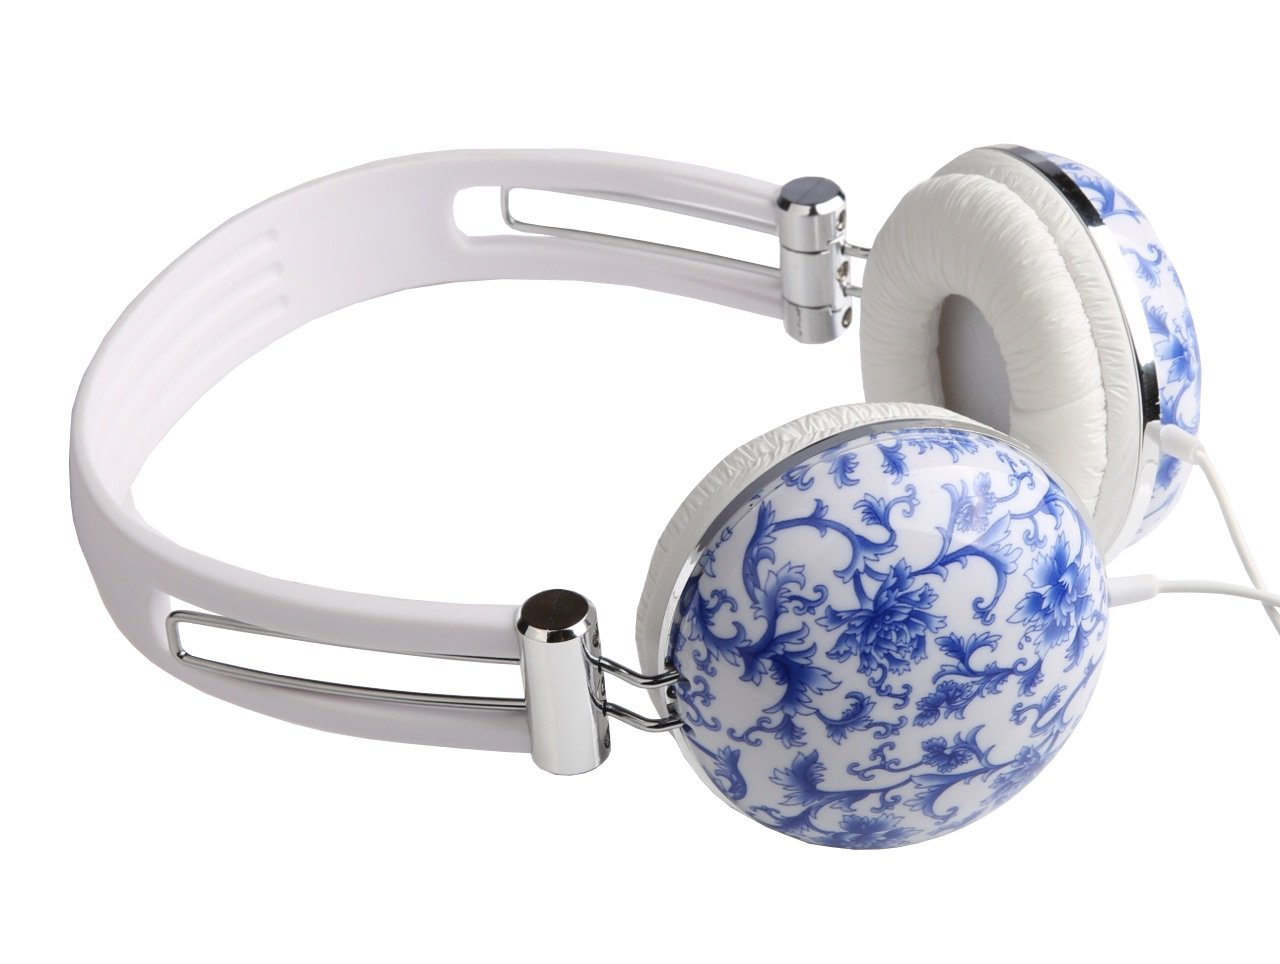 Vantage Decor Over Ear Headphones for iPhone Android Tablet Laptop Blue Floral by Vantage Decor (Image #1)